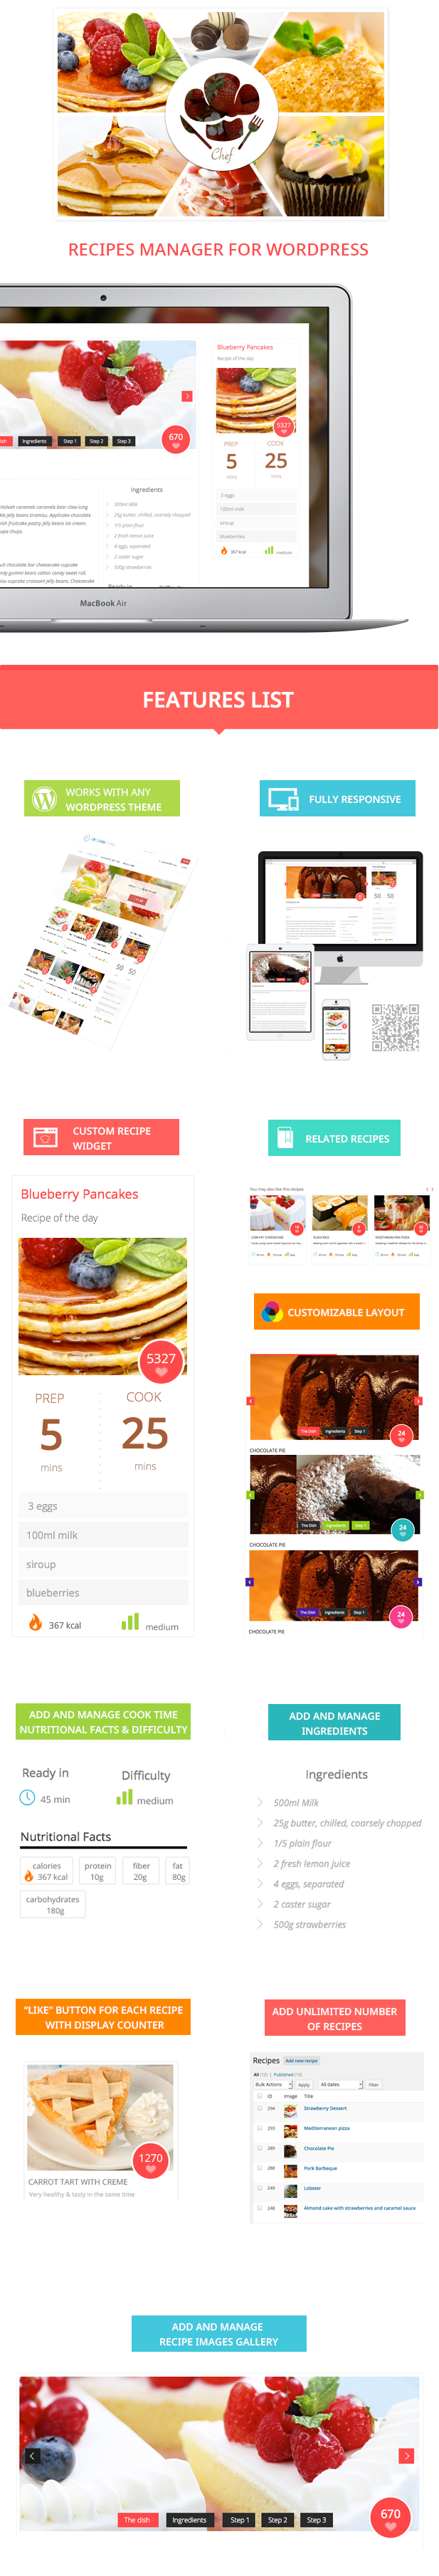 Le Chef - Premium Recipe Plugin - 15 Le Chef - Premium Recipe Plugin - lechef - Le Chef – Premium Recipe Plugin